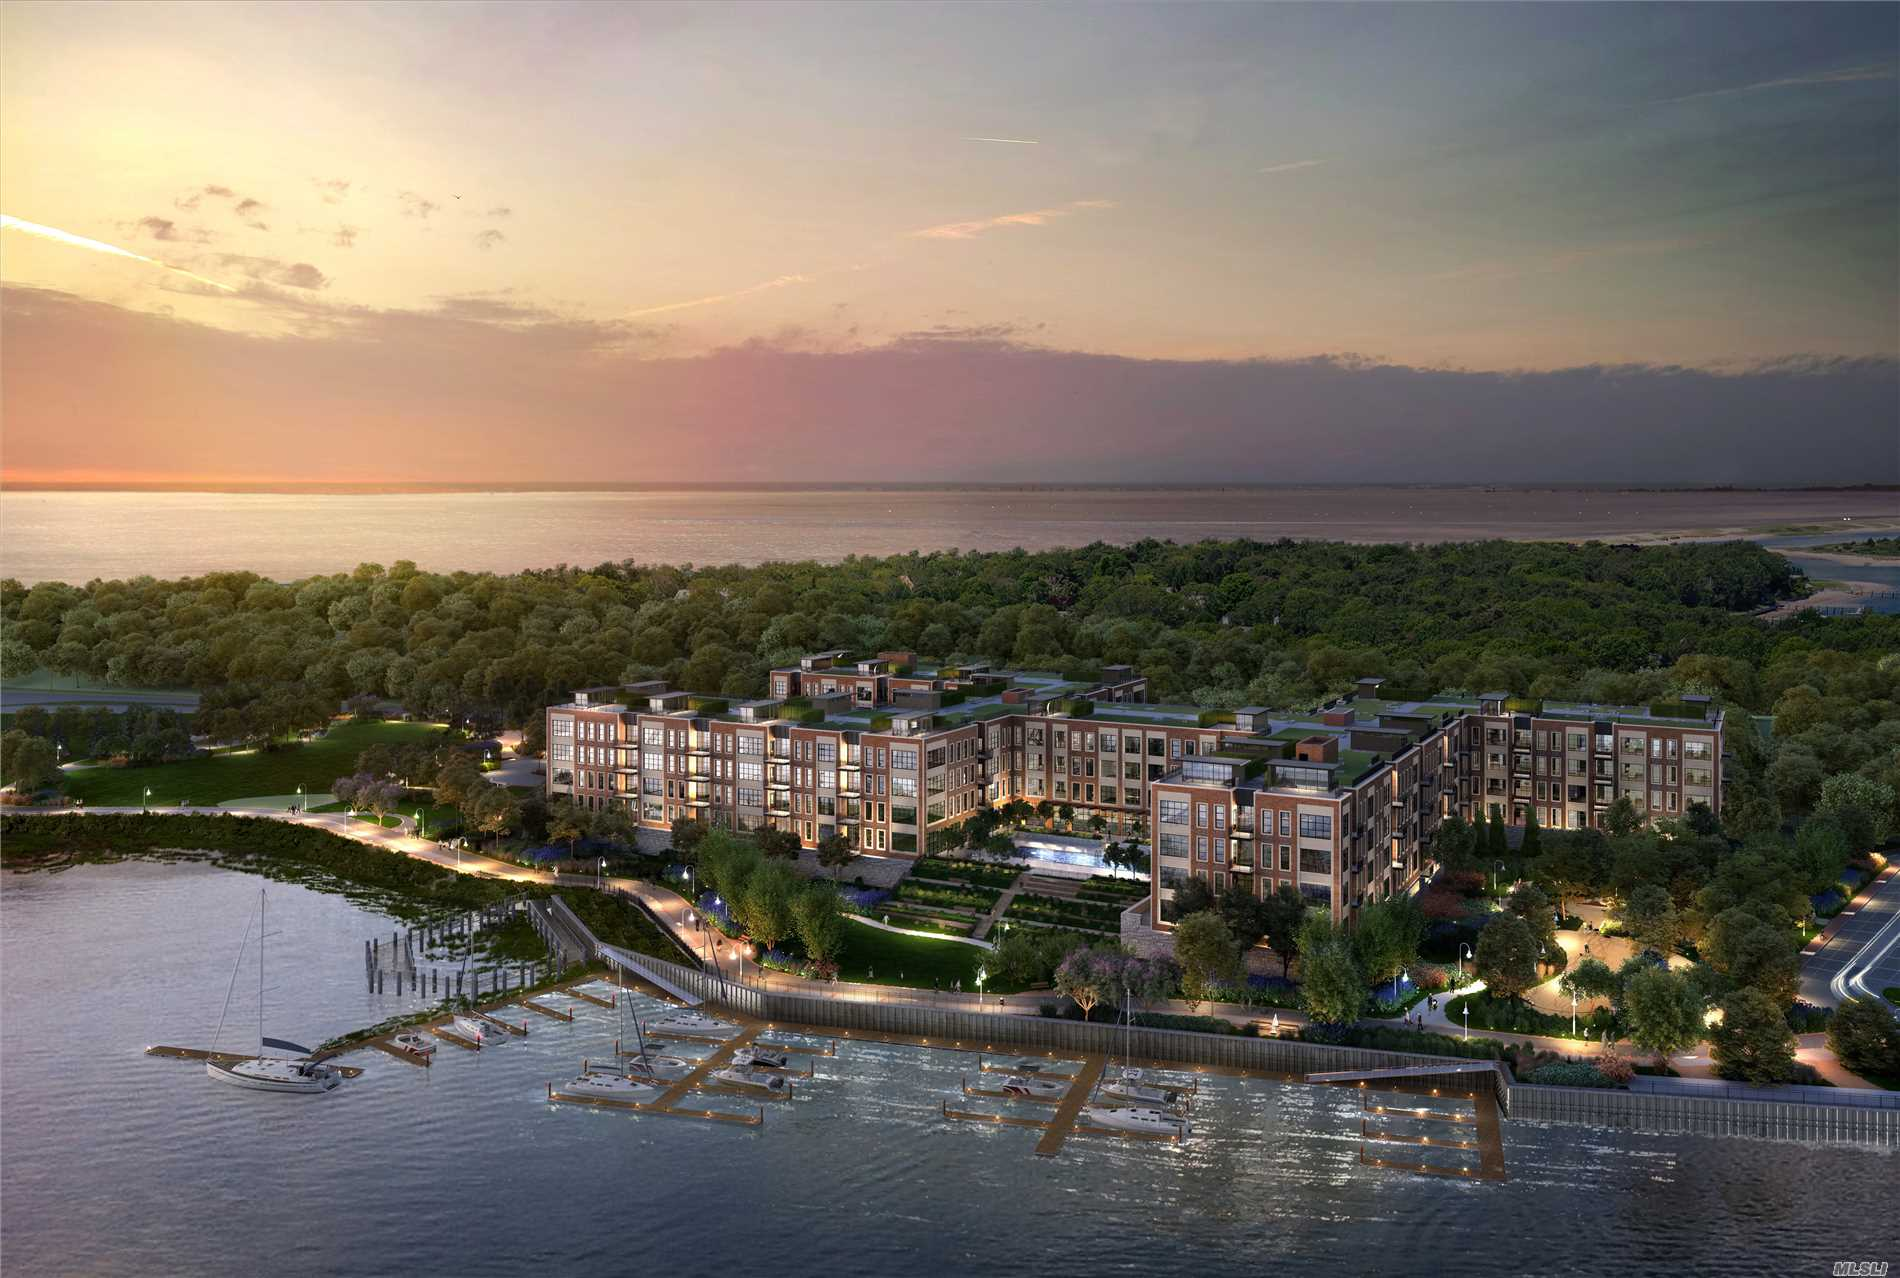 Property for sale at 100 Garvies Point Road # 1339, Glen Cove NY 11542, Glen Cove,  New York 11542